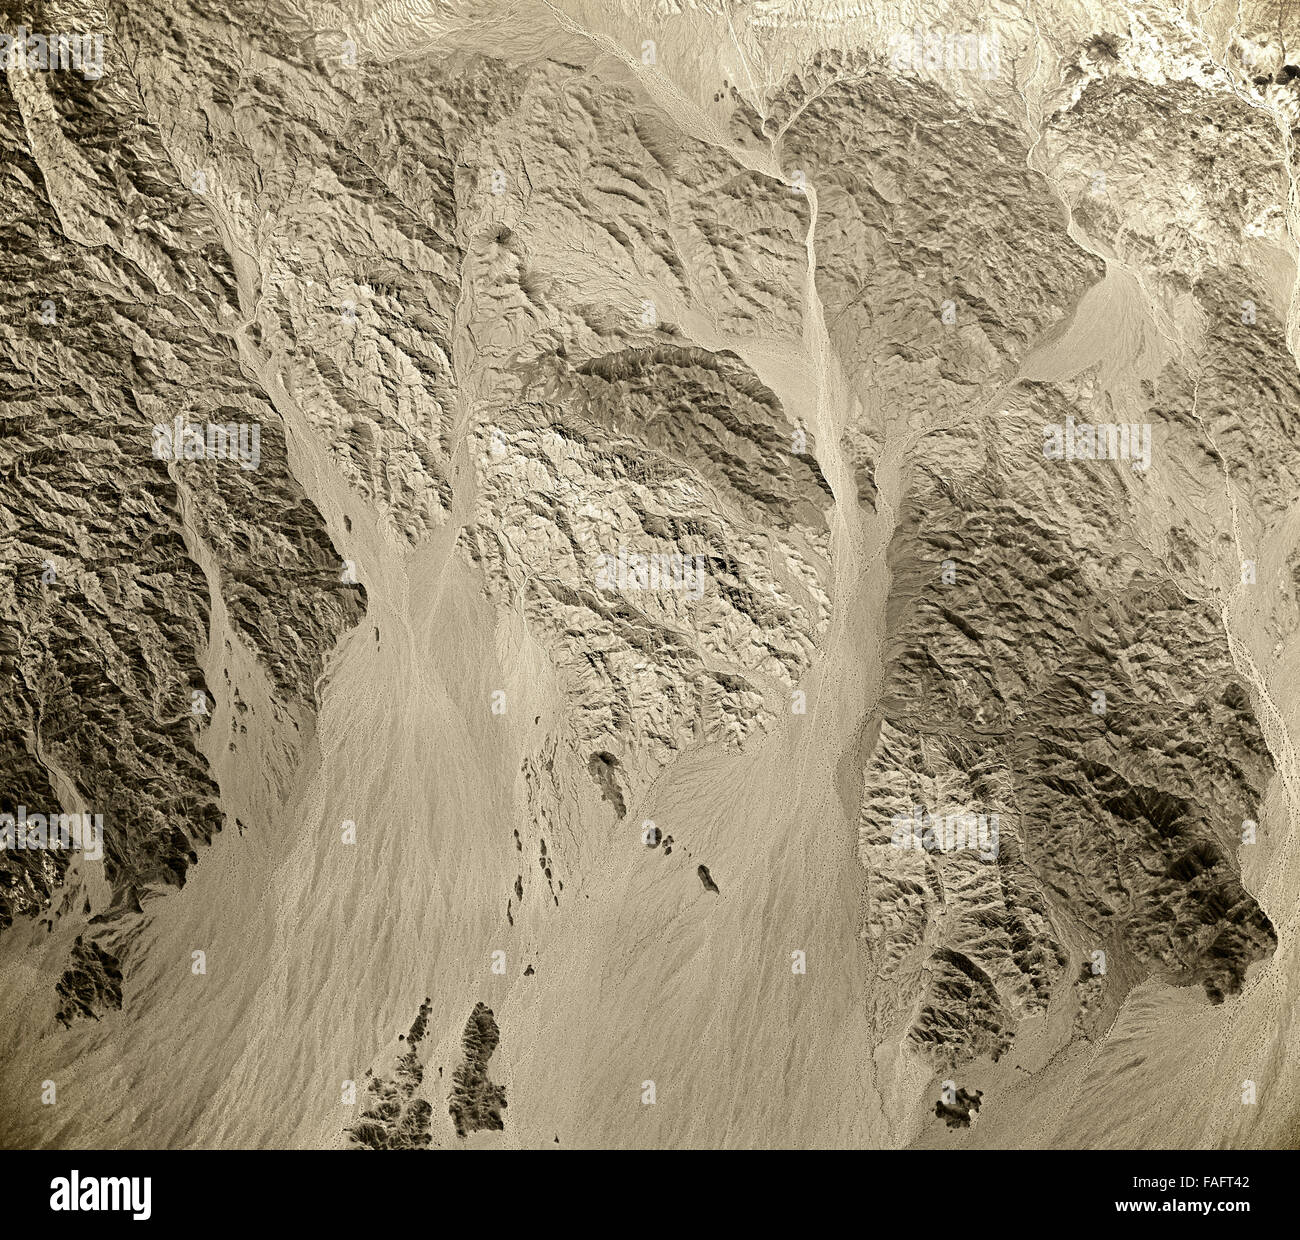 historical aerial photograph of desert and mountains east of Salton Sea, Imperial County, California, 1954 - Stock Image